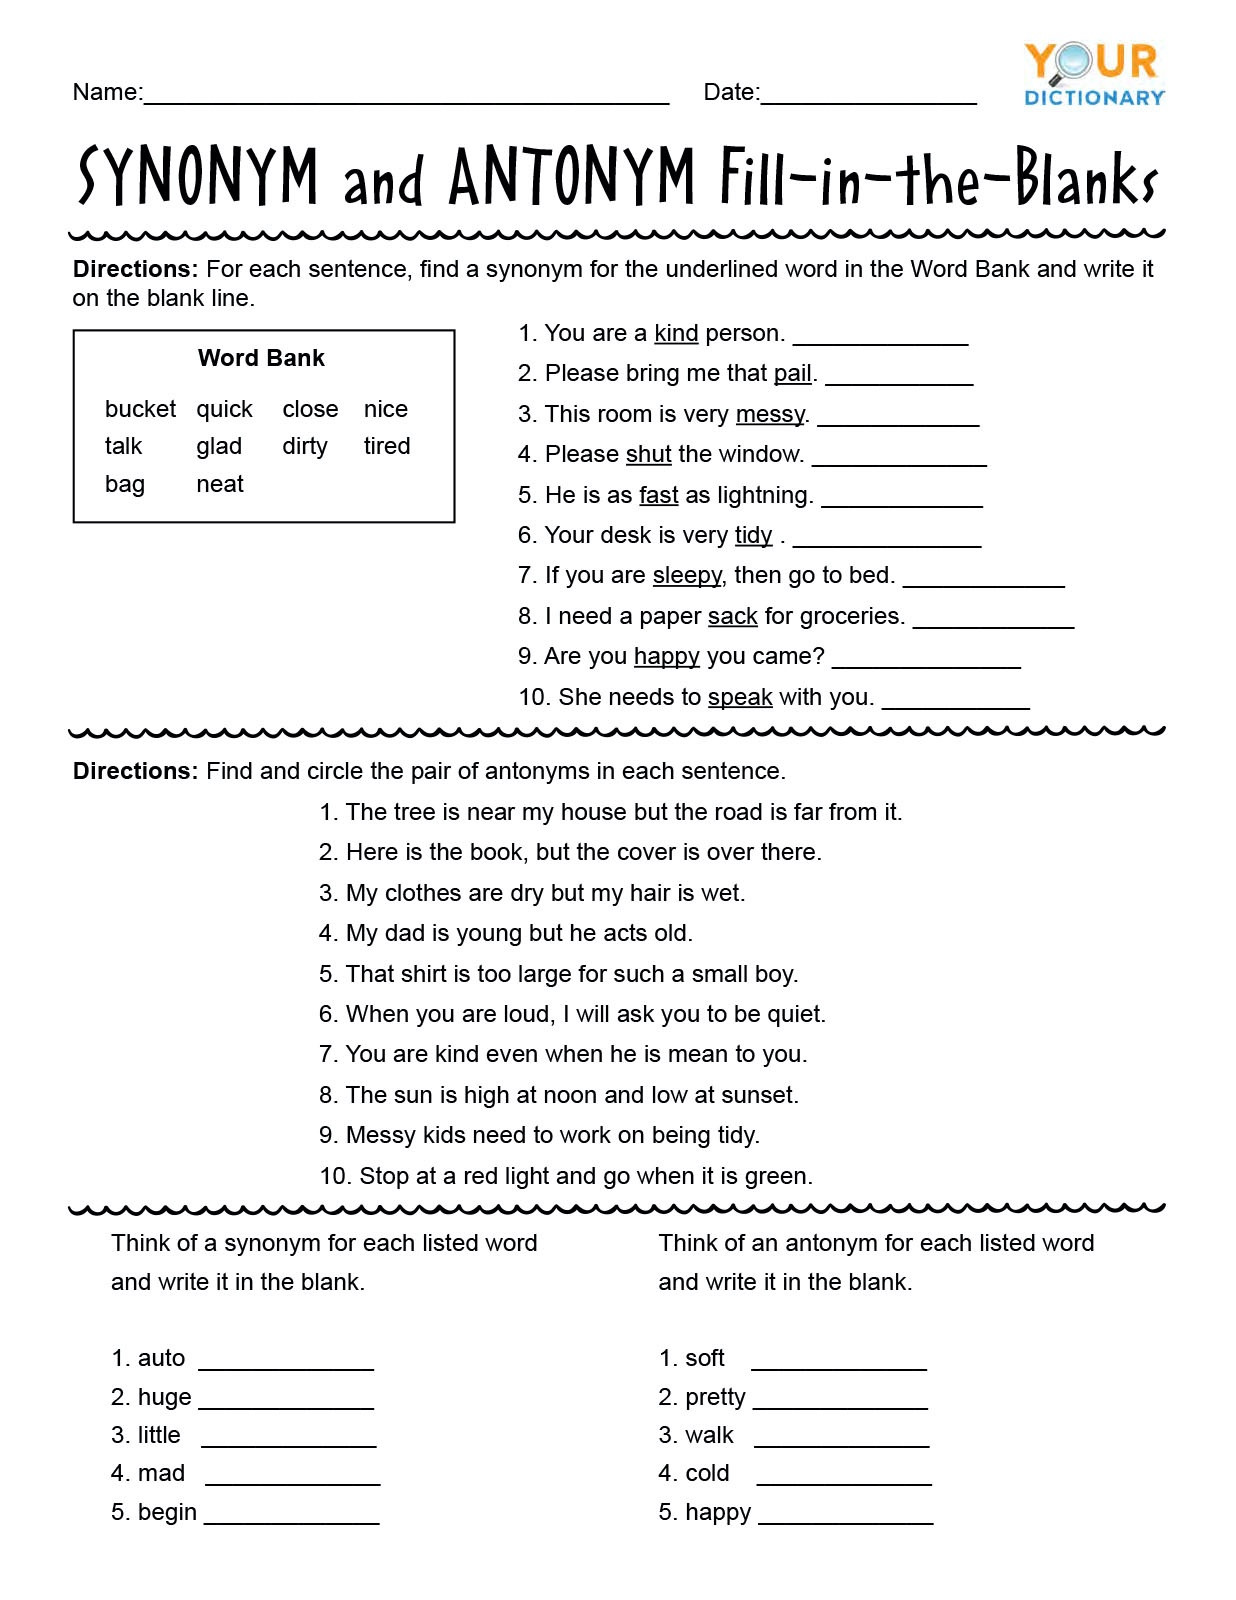 Antonyms Worksheets 3rd Grade First Grade Synonyms and Antonyms Worksheets